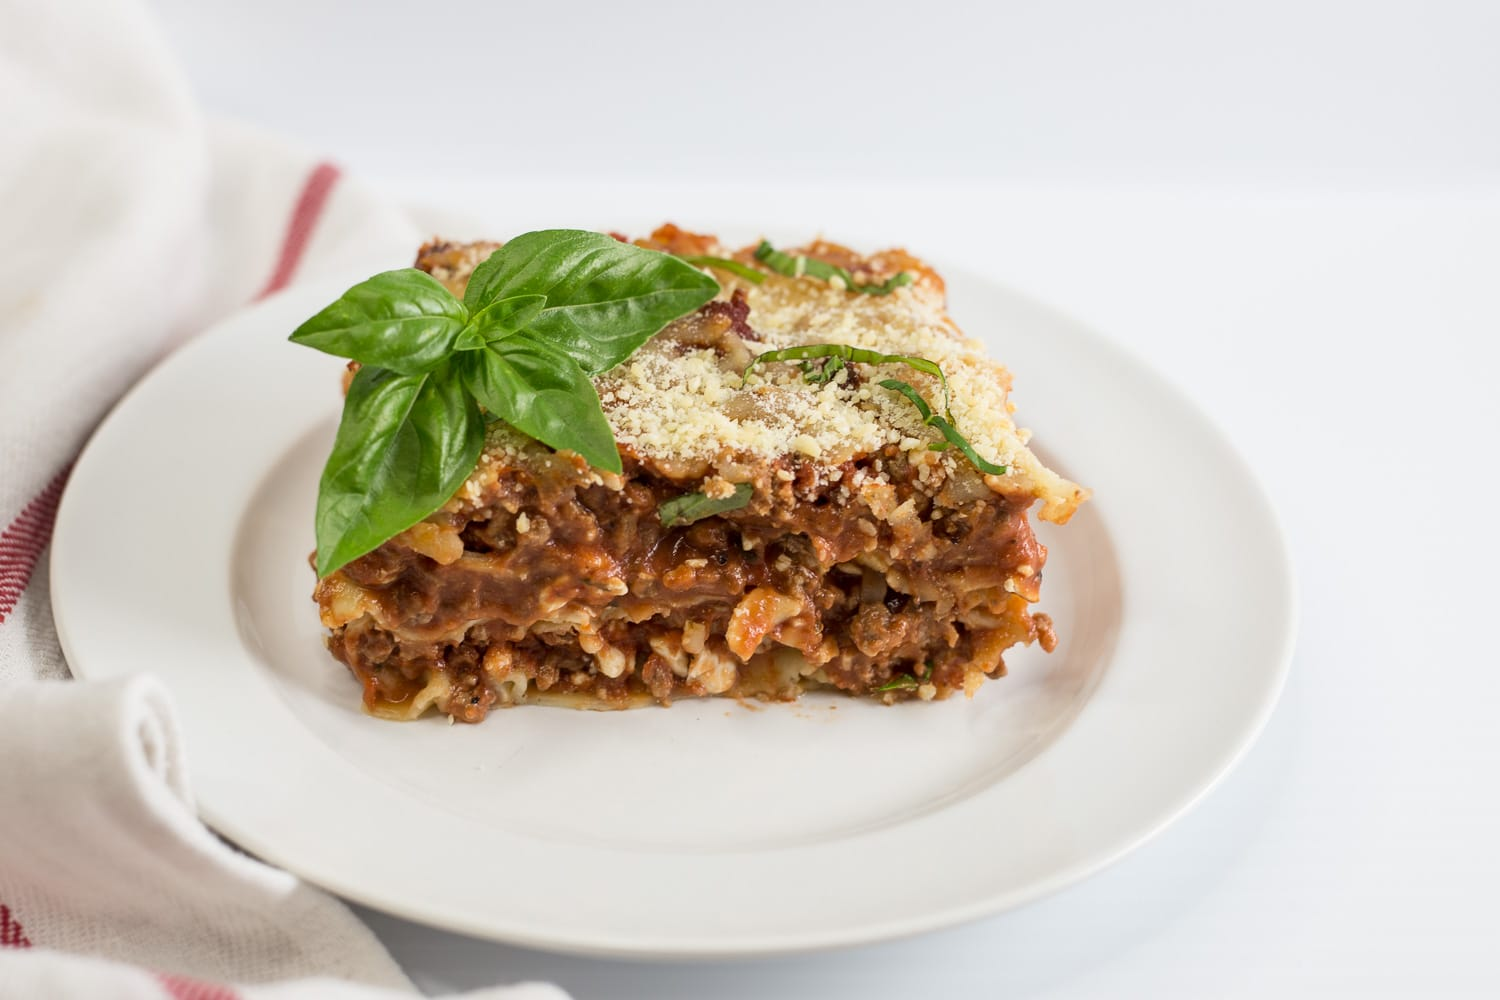 This lasagne is a make-ahead meal for an entire crowd that is fit for a king!